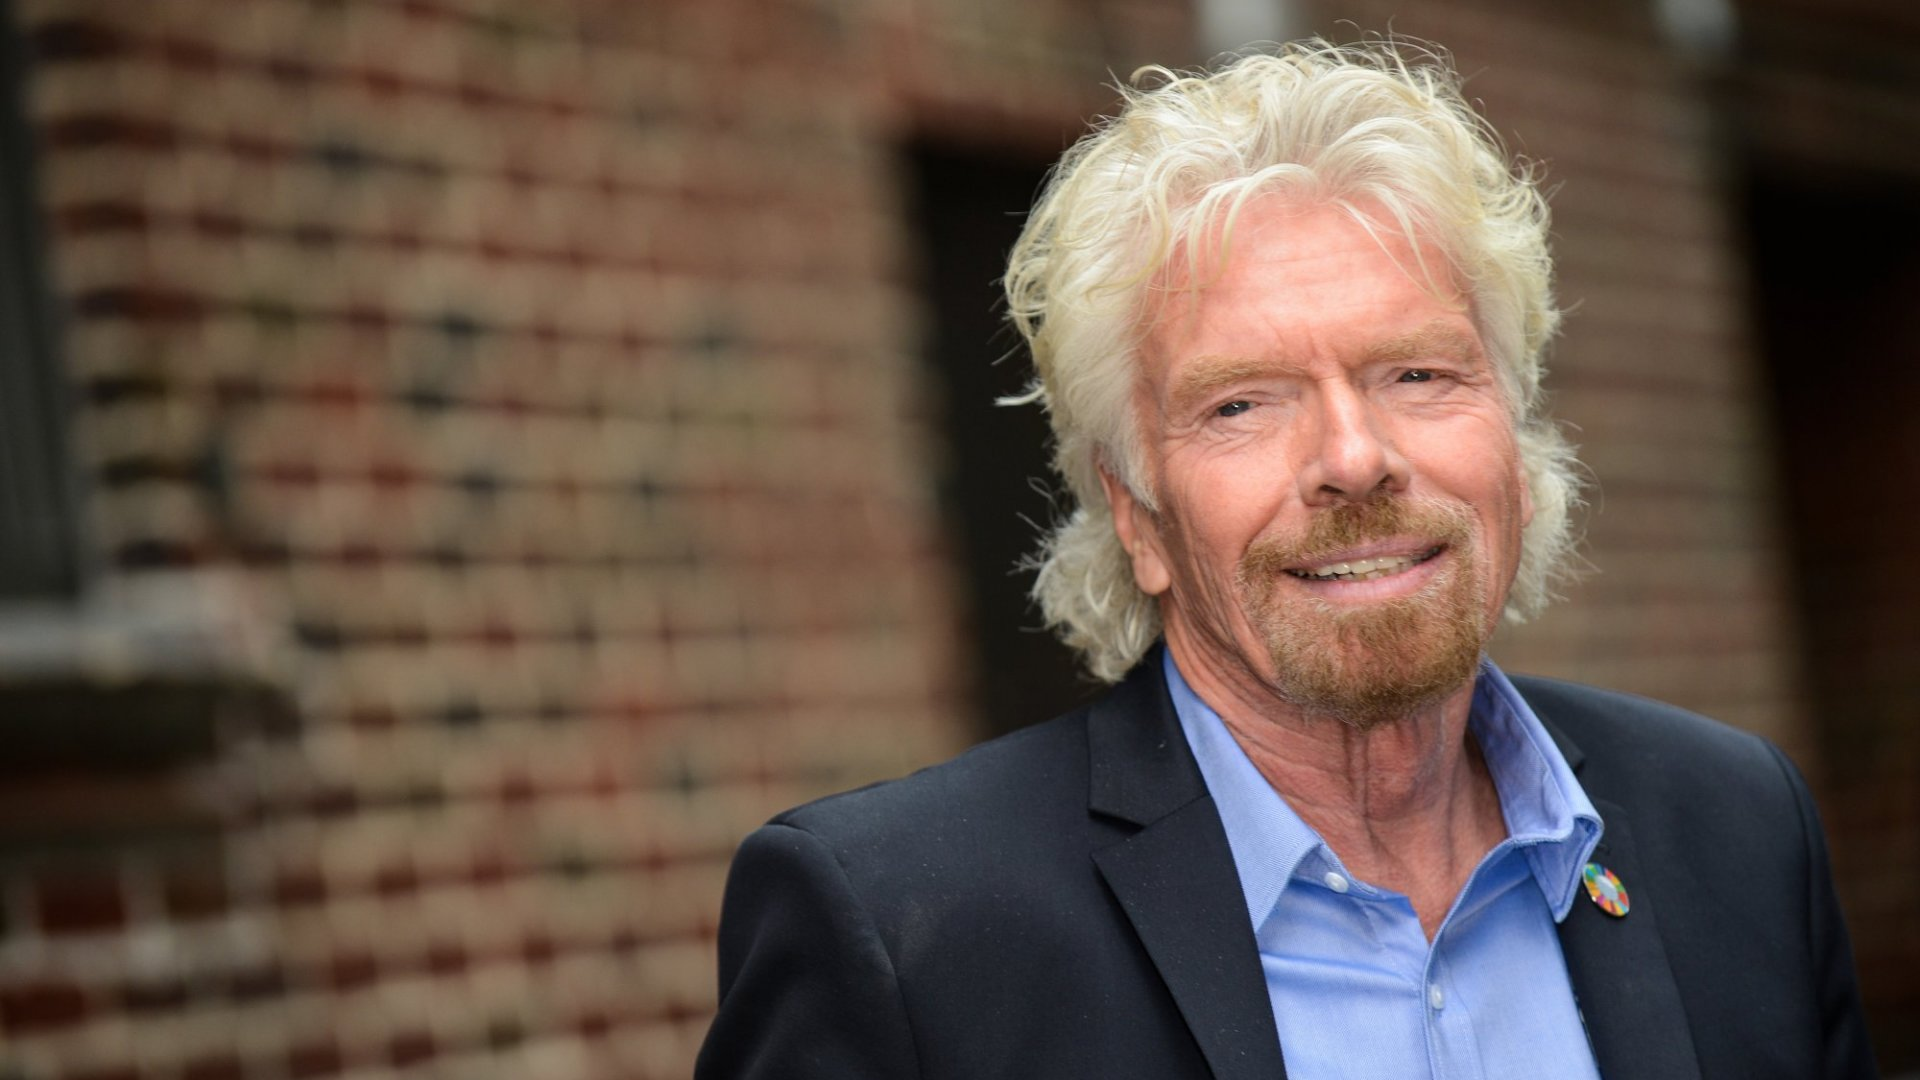 Richard Branson Uses This 1 Simple Trick to Keep Meetings Short and Focused. (You'll Kick Yourself for Not Thinking of This)